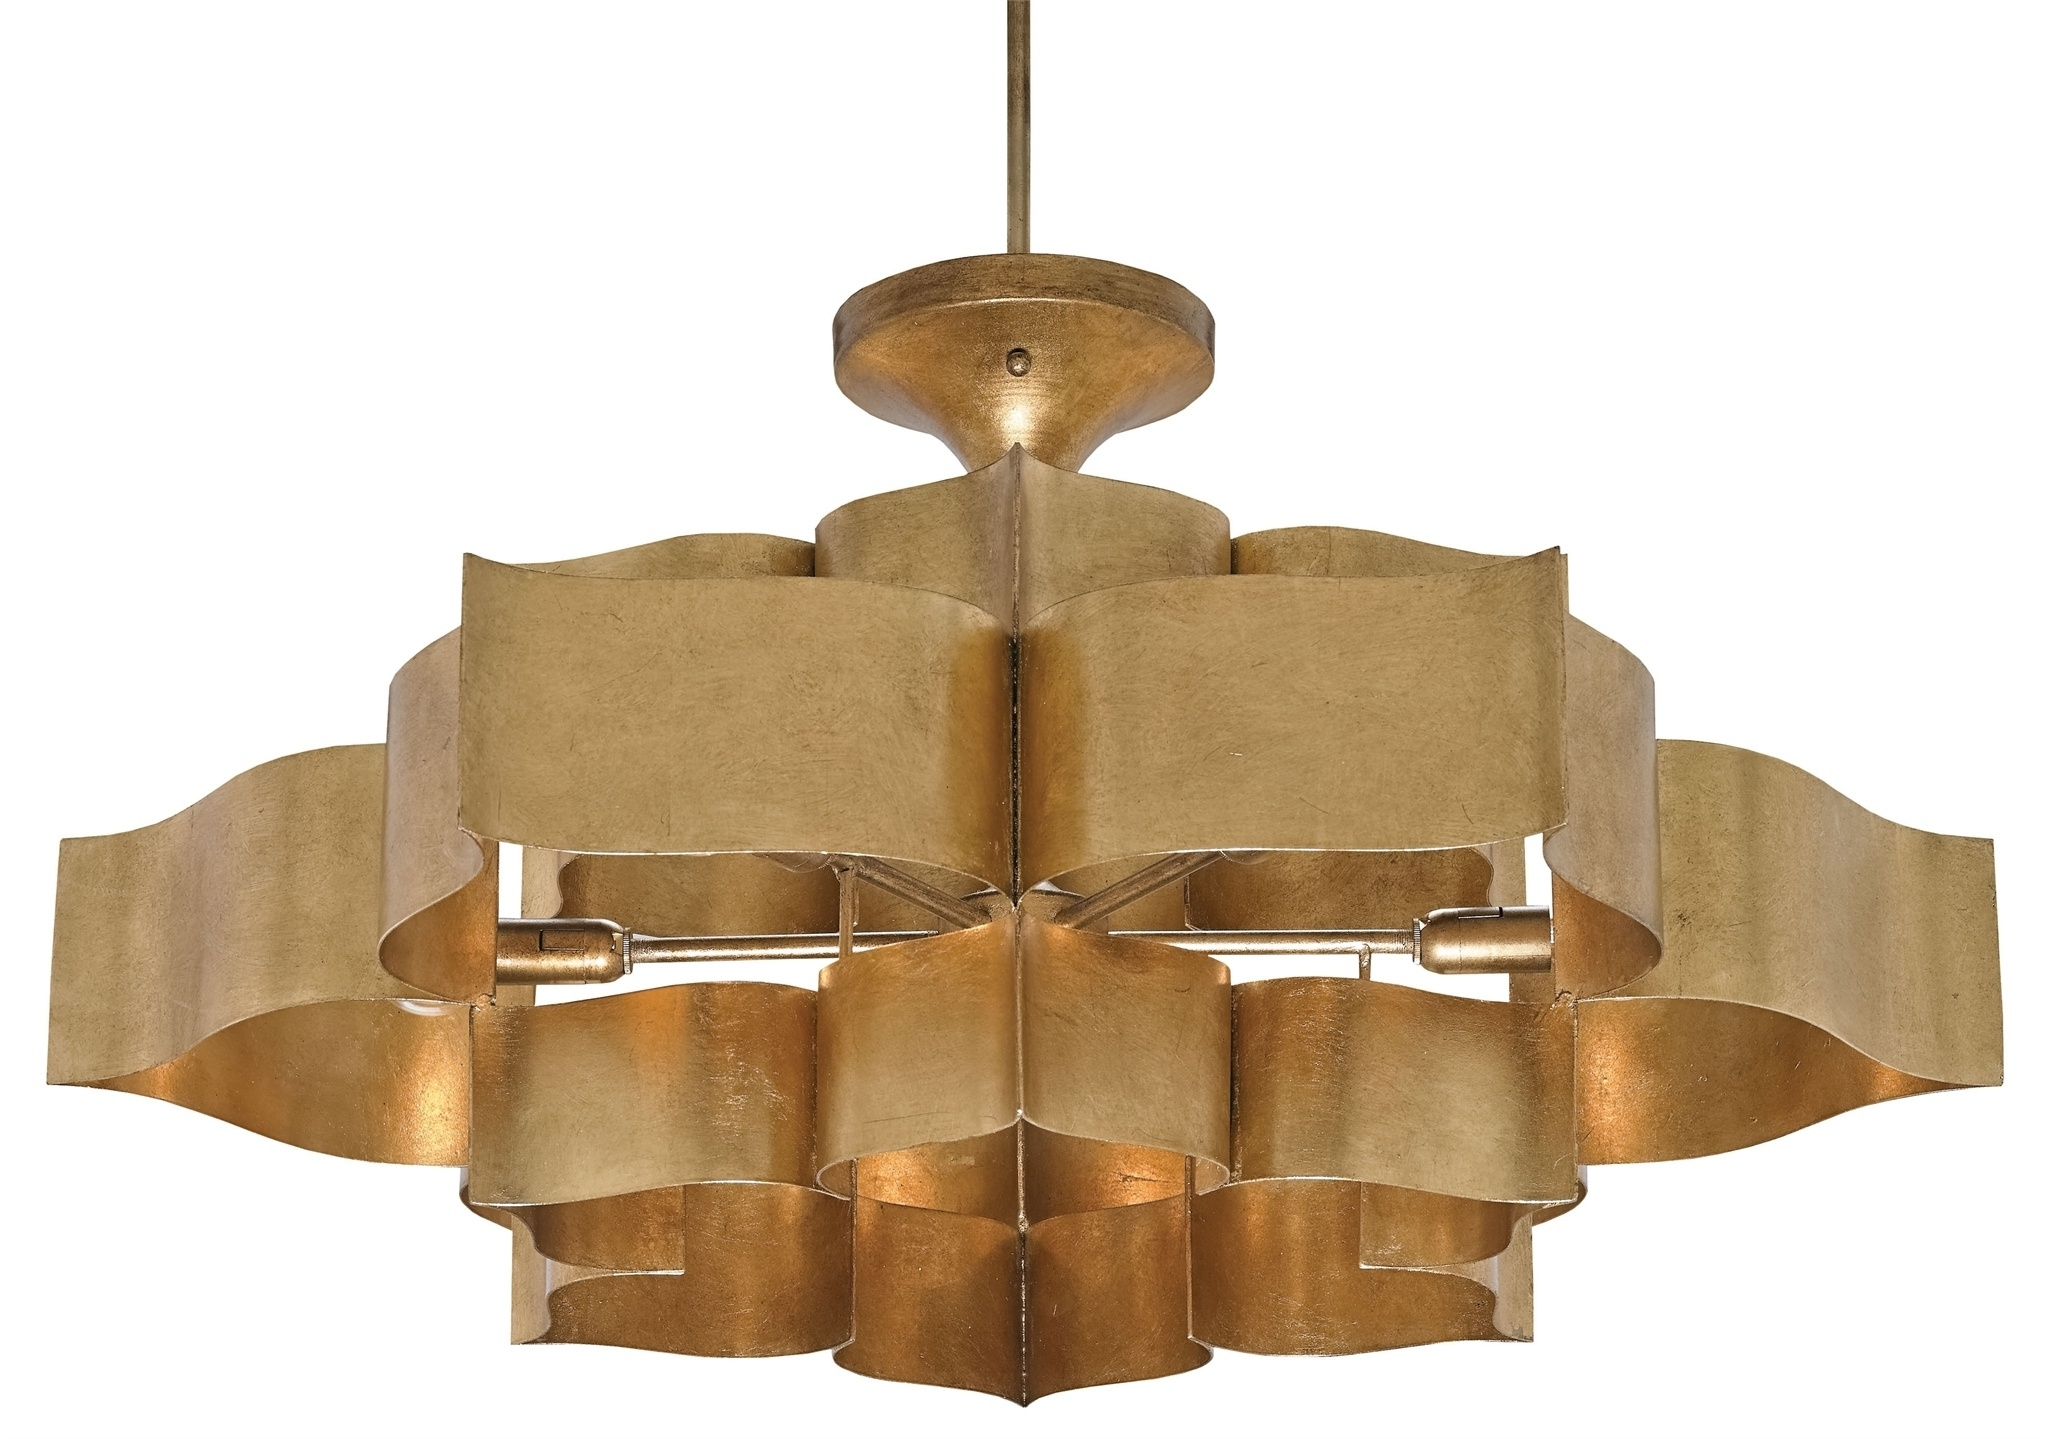 Favorite Blossom Gold Leaf Chandelier – Mecox Gardens For Gold Leaf Chandelier (View 4 of 20)